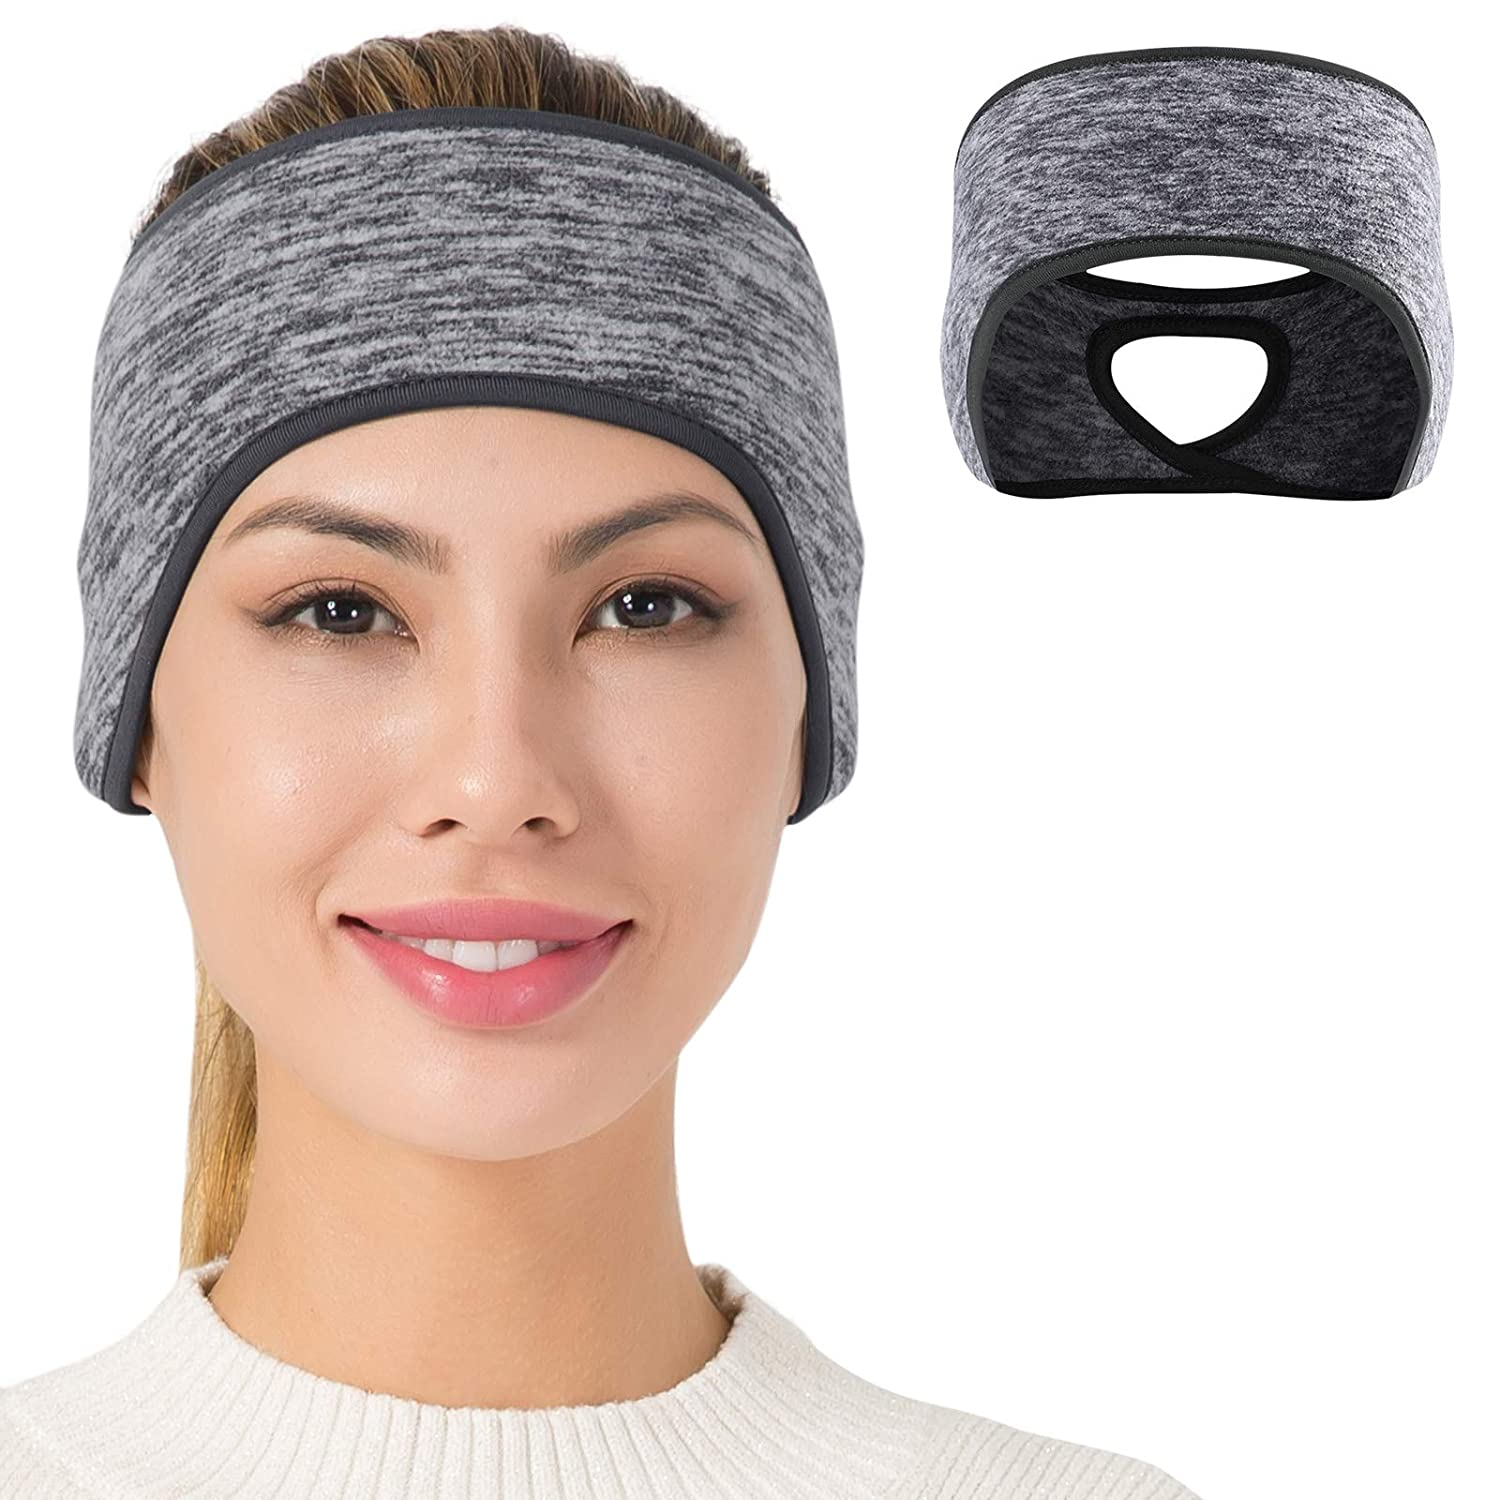 TALONITE Womens Ponytail Headband - Fleece Ear Warmer (1 Pack/ 2 Pack/ 3 Pack) - Perfect for Winter Outdoor Sports Running